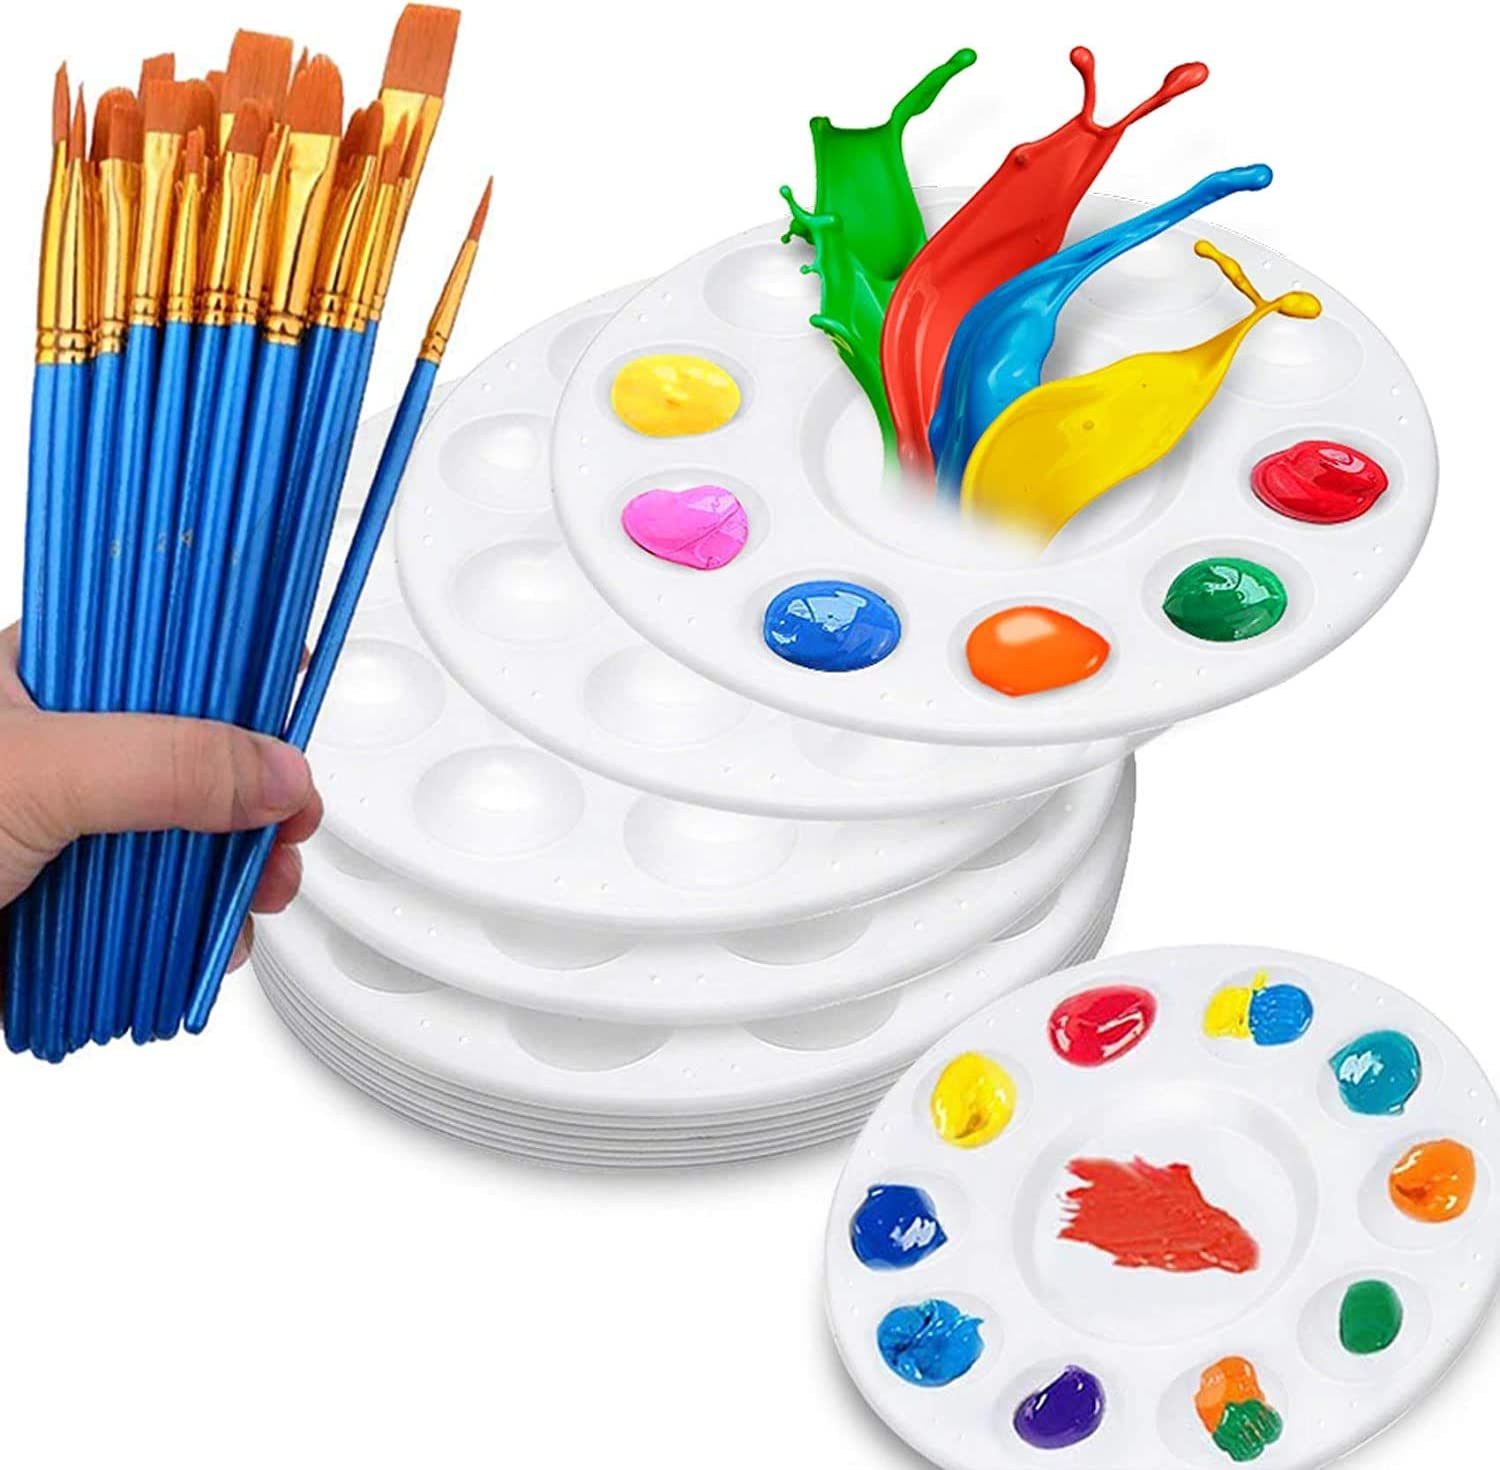 Goging 20 Pcs Nylon Hair Brush Set with 6 Piece Paint Tray Palette Plastic for Kids DIY Craft Art Painting Round Pallets